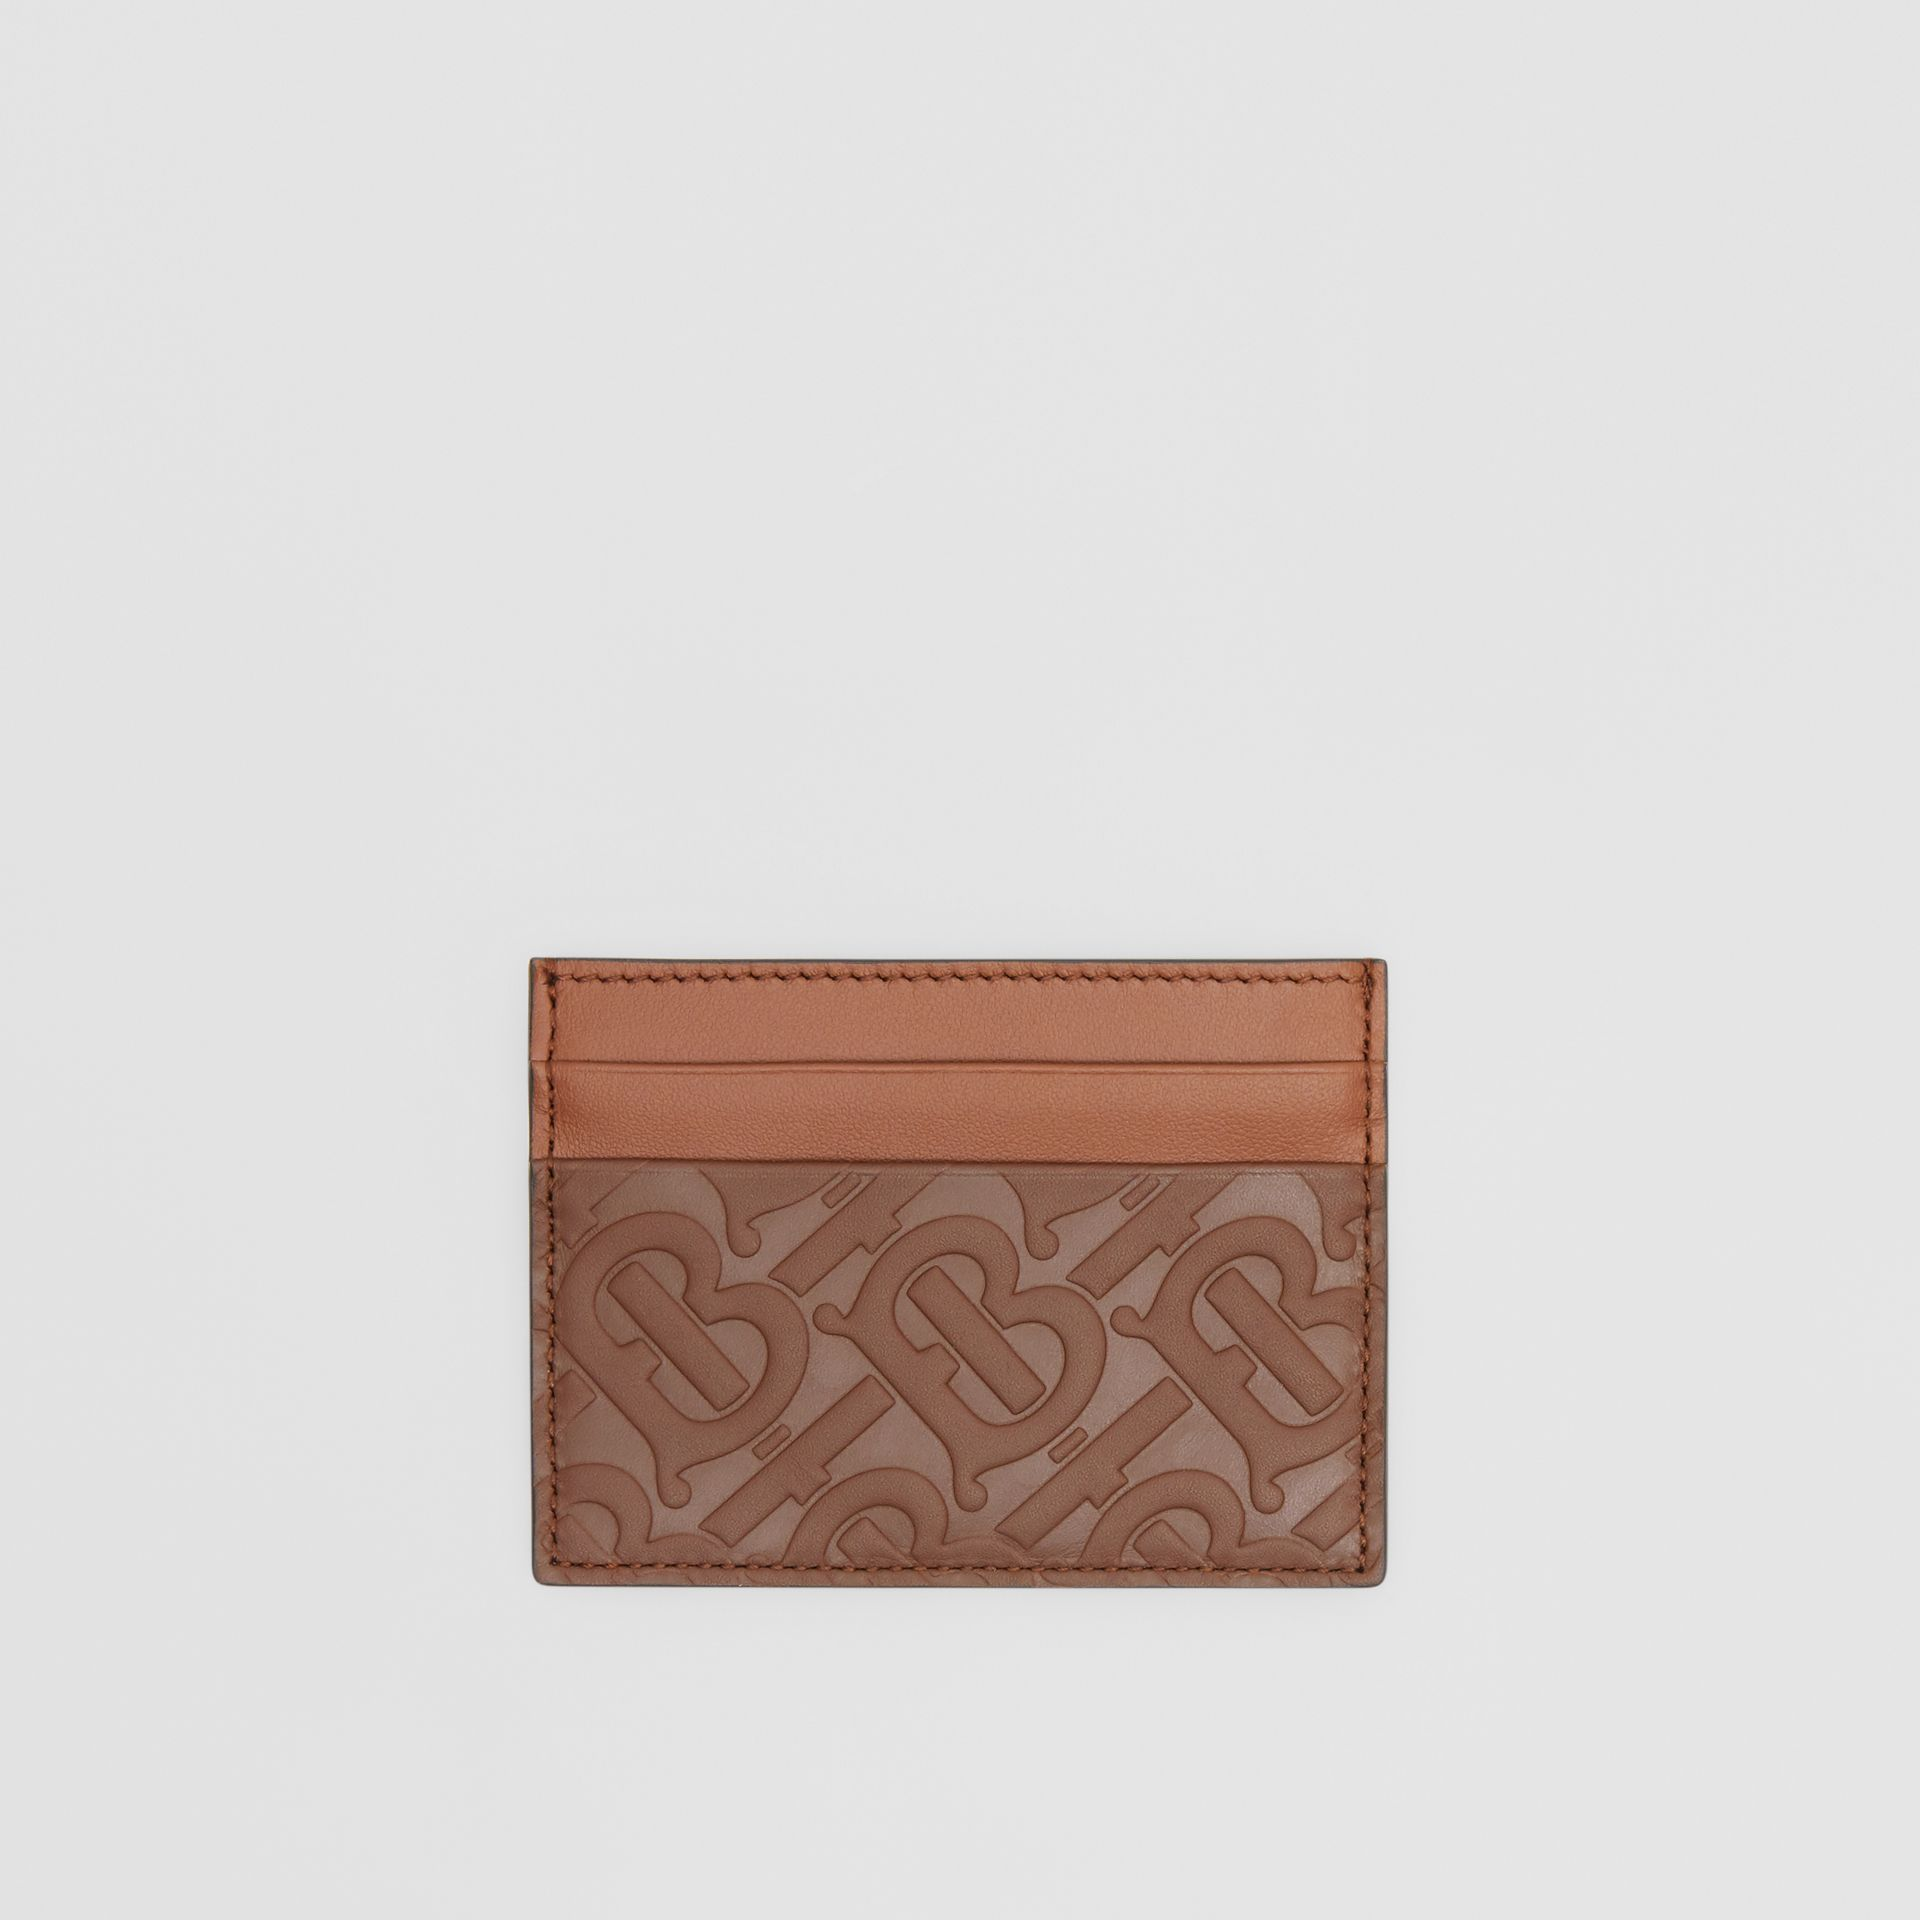 Monogram Leather Card Case in Dark Tan - Men | Burberry United Kingdom - gallery image 0